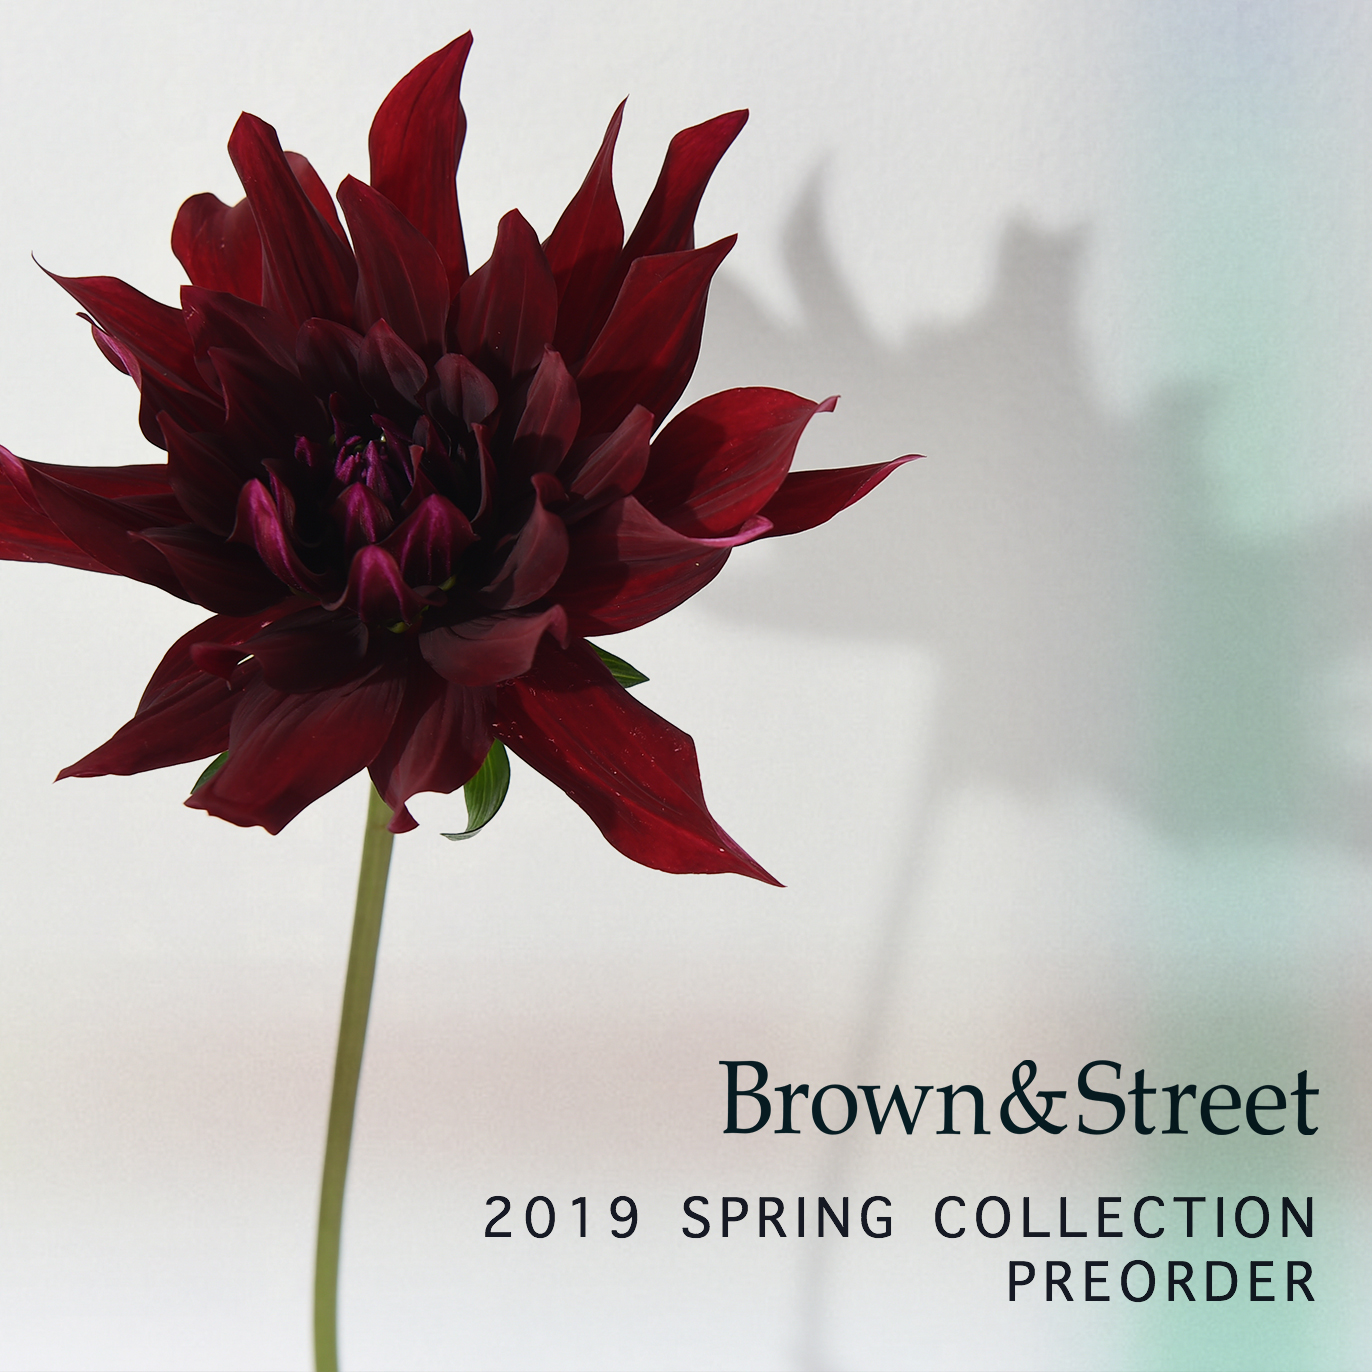 【Brown&Street 2019 SPRING COLLECTION PLEORDER】